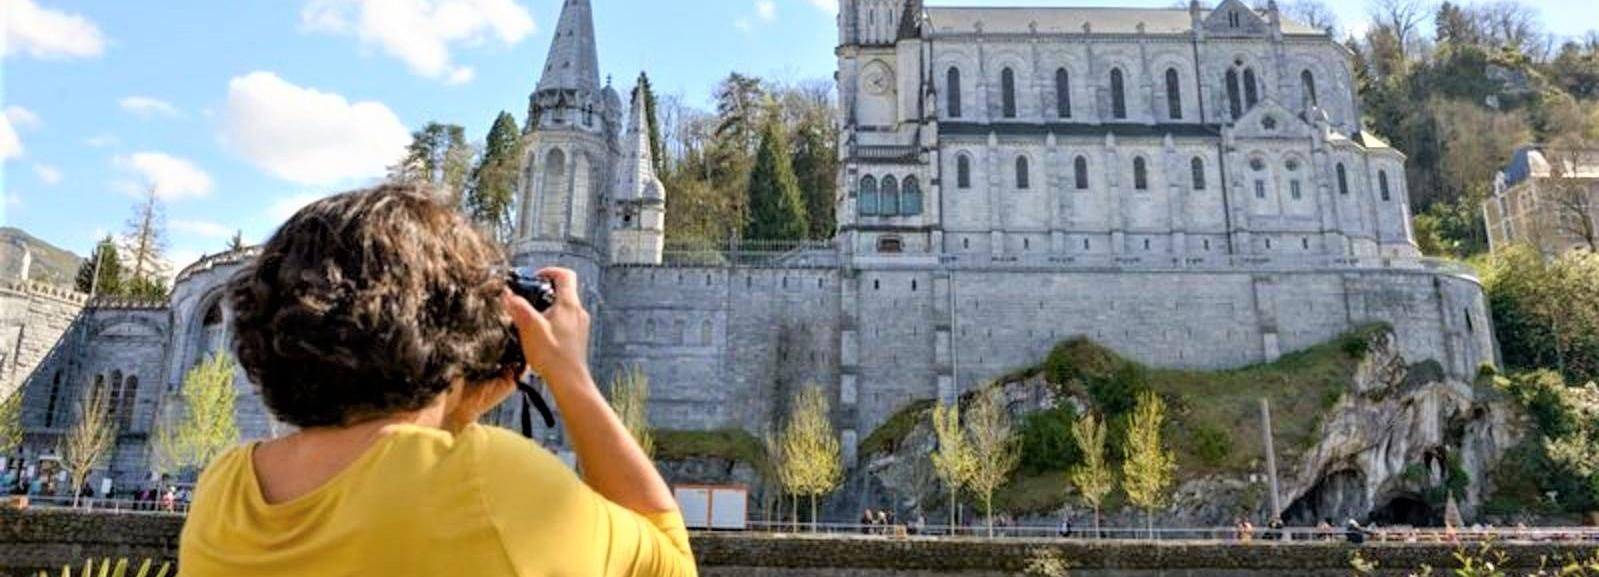 Lourdes: Our Lady of Lourdes Guided Tour in the Sanctuary